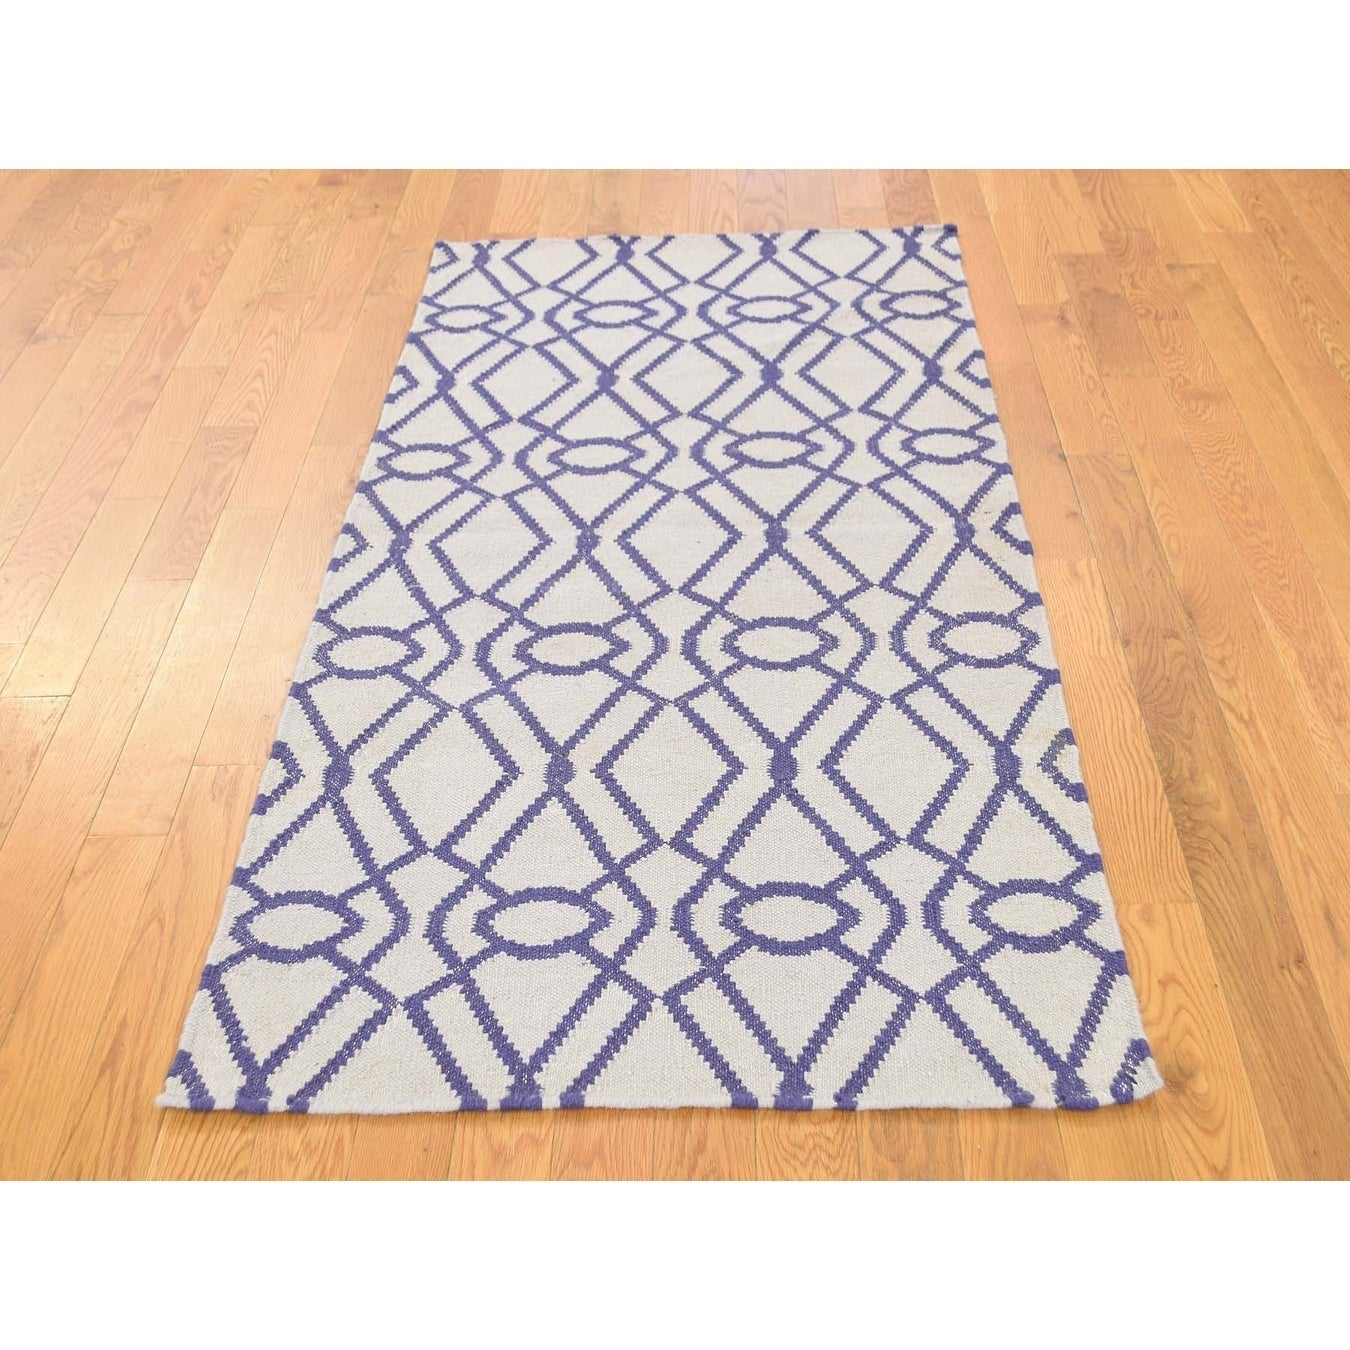 Hand Knotted Ivory Flat Weave with Wool Oriental Rug - 28 x 510